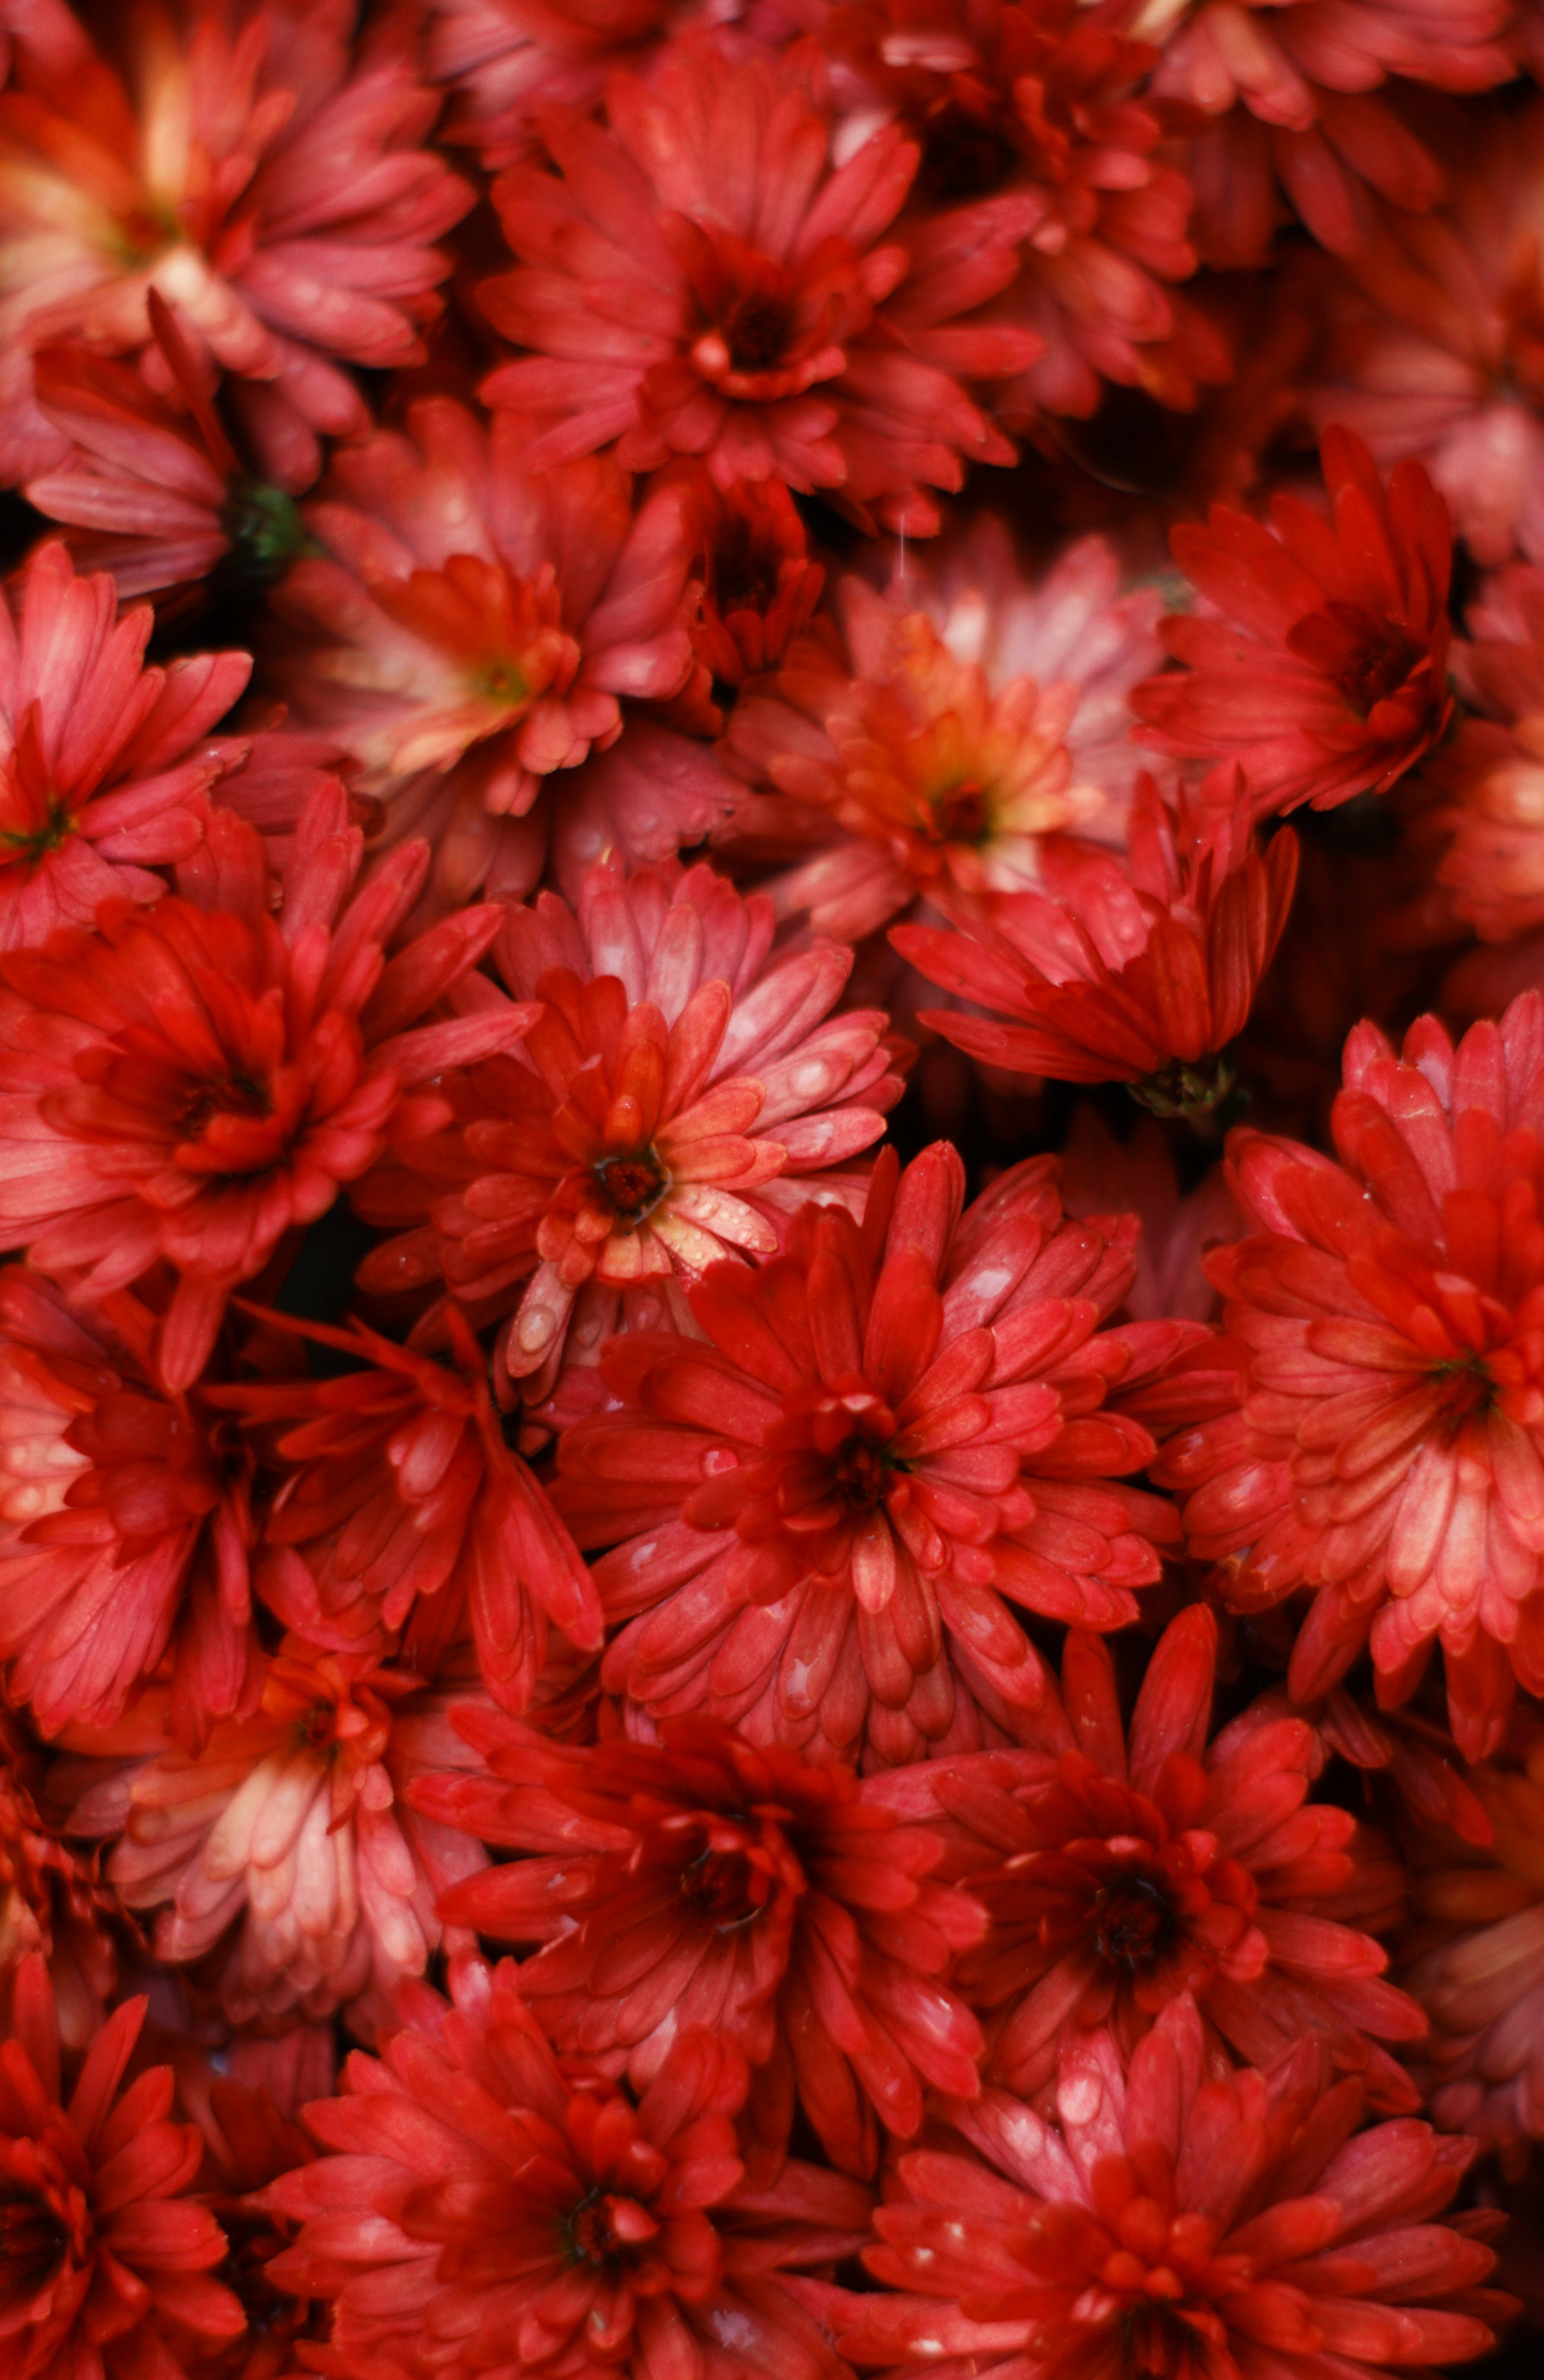 Free stock photo of red, flowers, autumn, fall